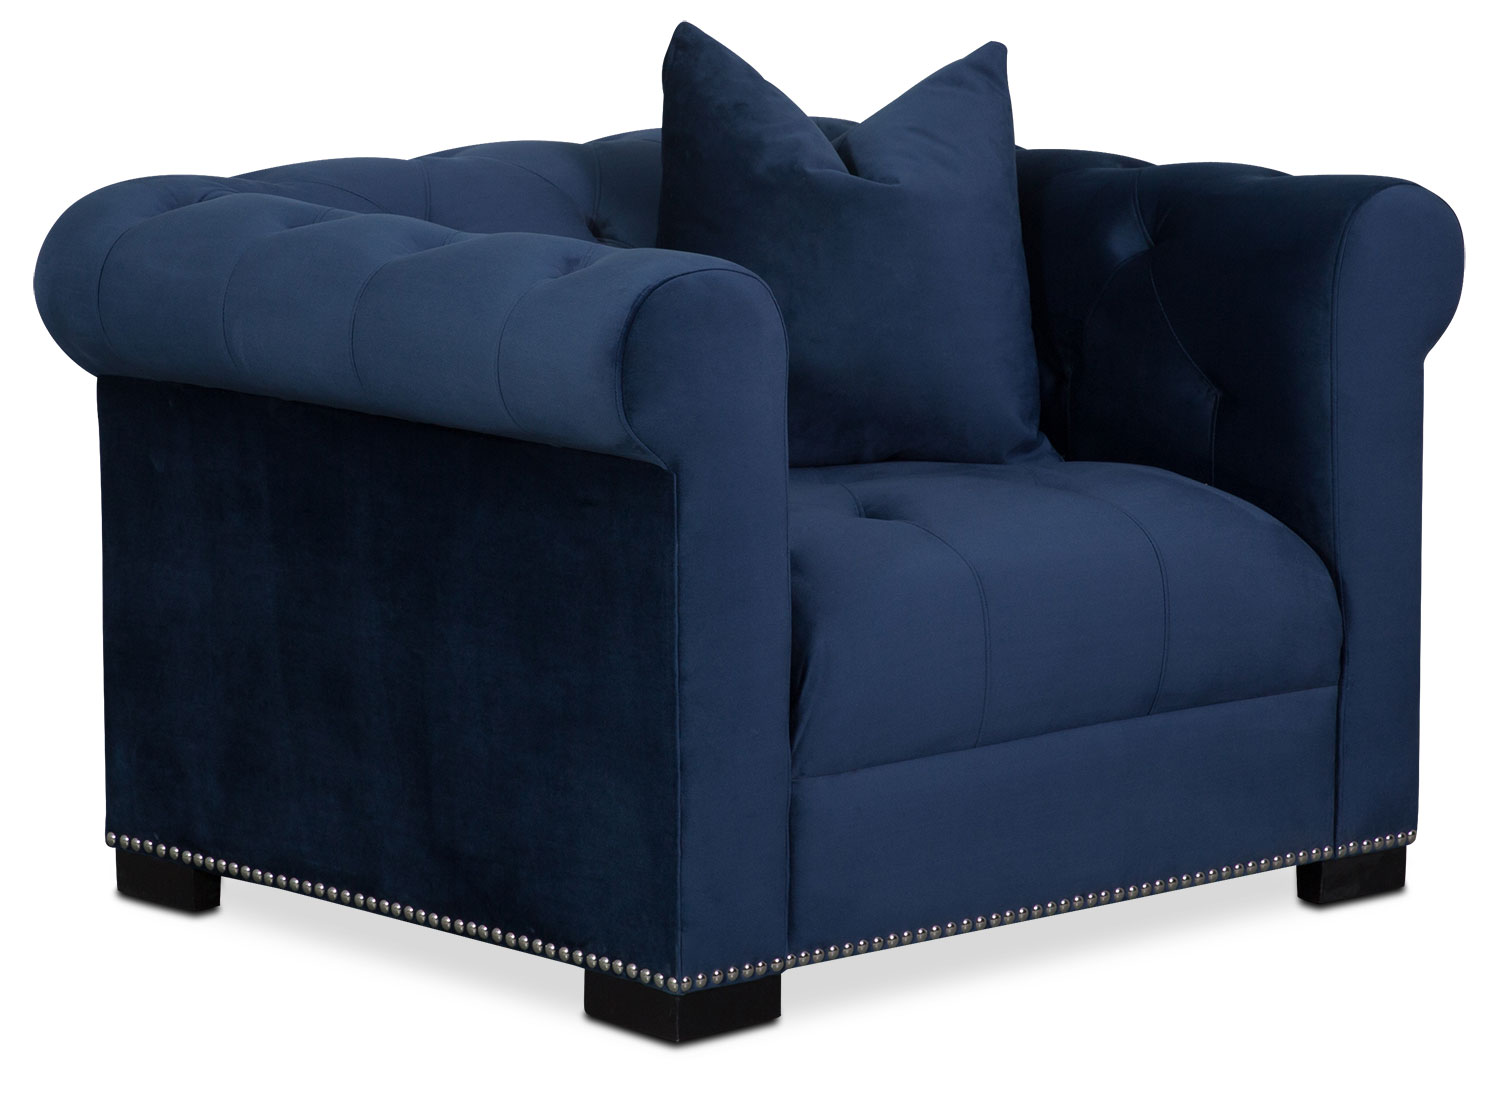 Living Room Furniture - Couture Chair - Indigo